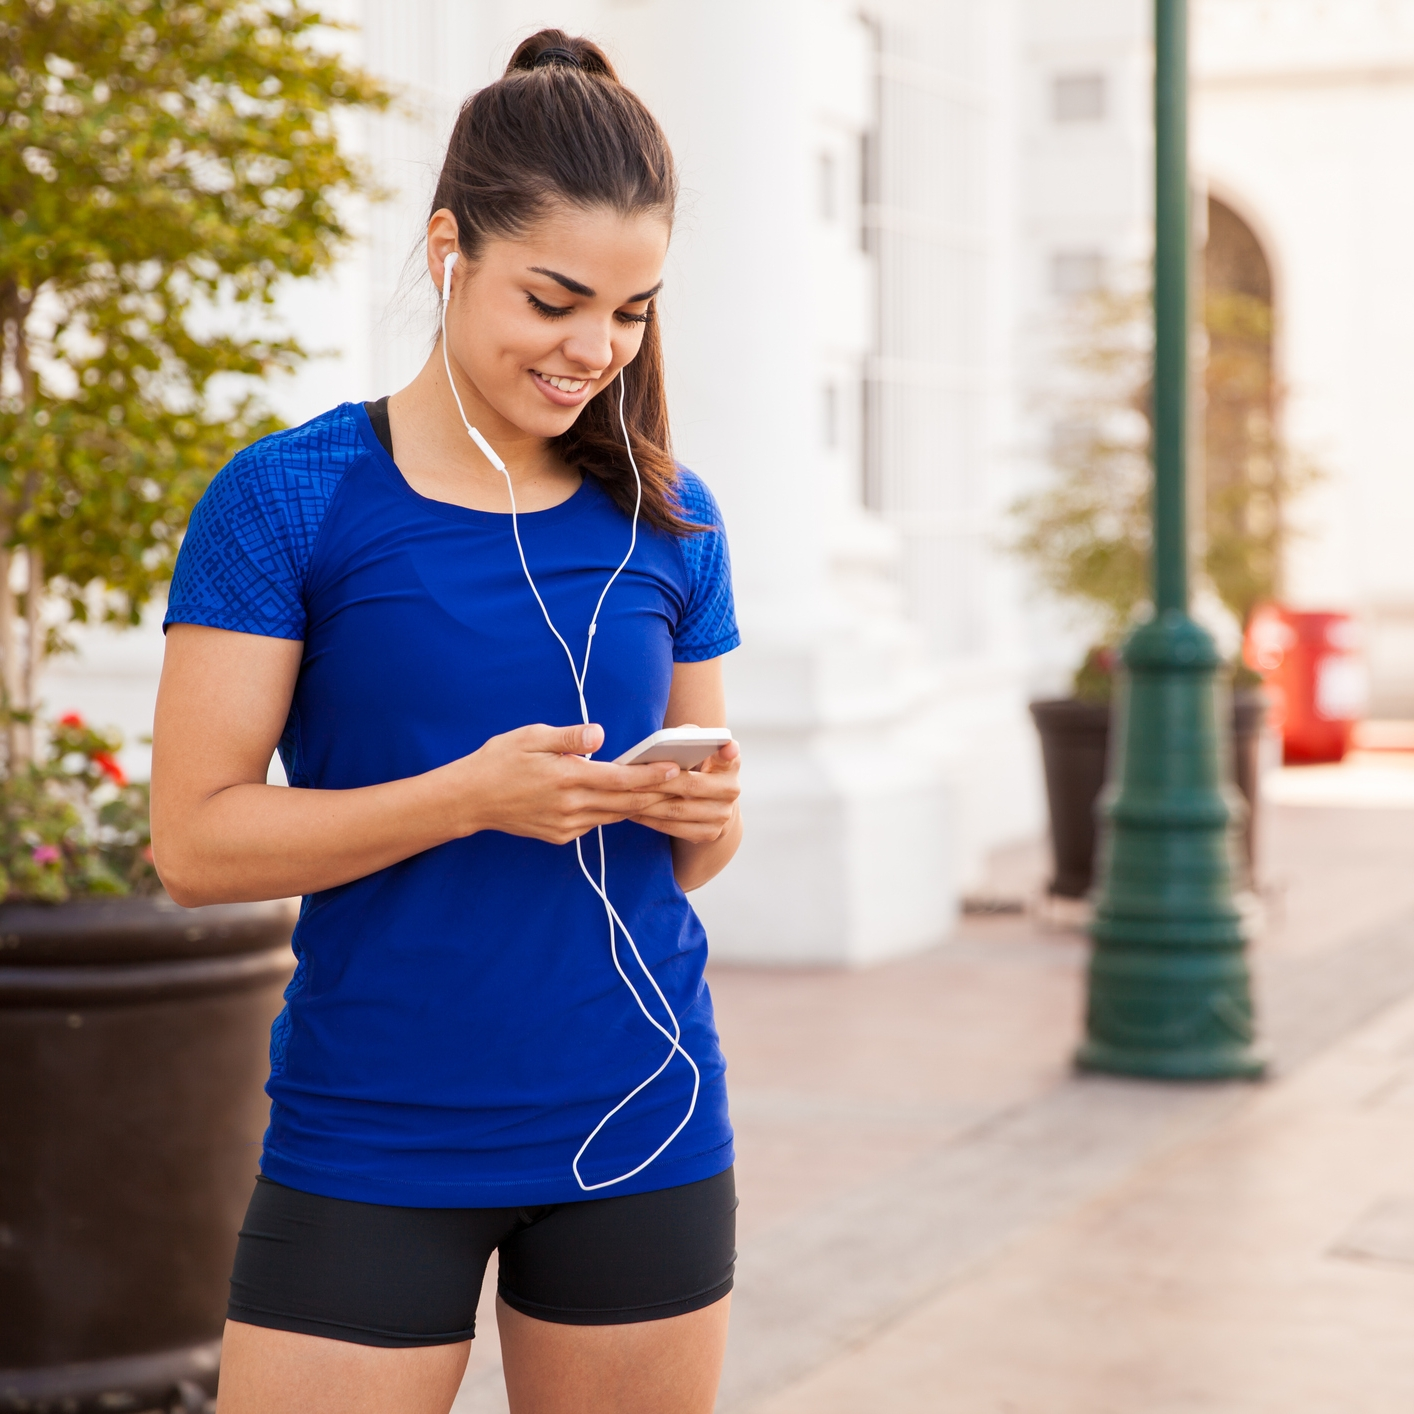 Remote Coaching & Training - With Remote Personal Training and Coaching, you use simple apps to view your workouts, monitor your progress to your goals, and access accountability with your coach.